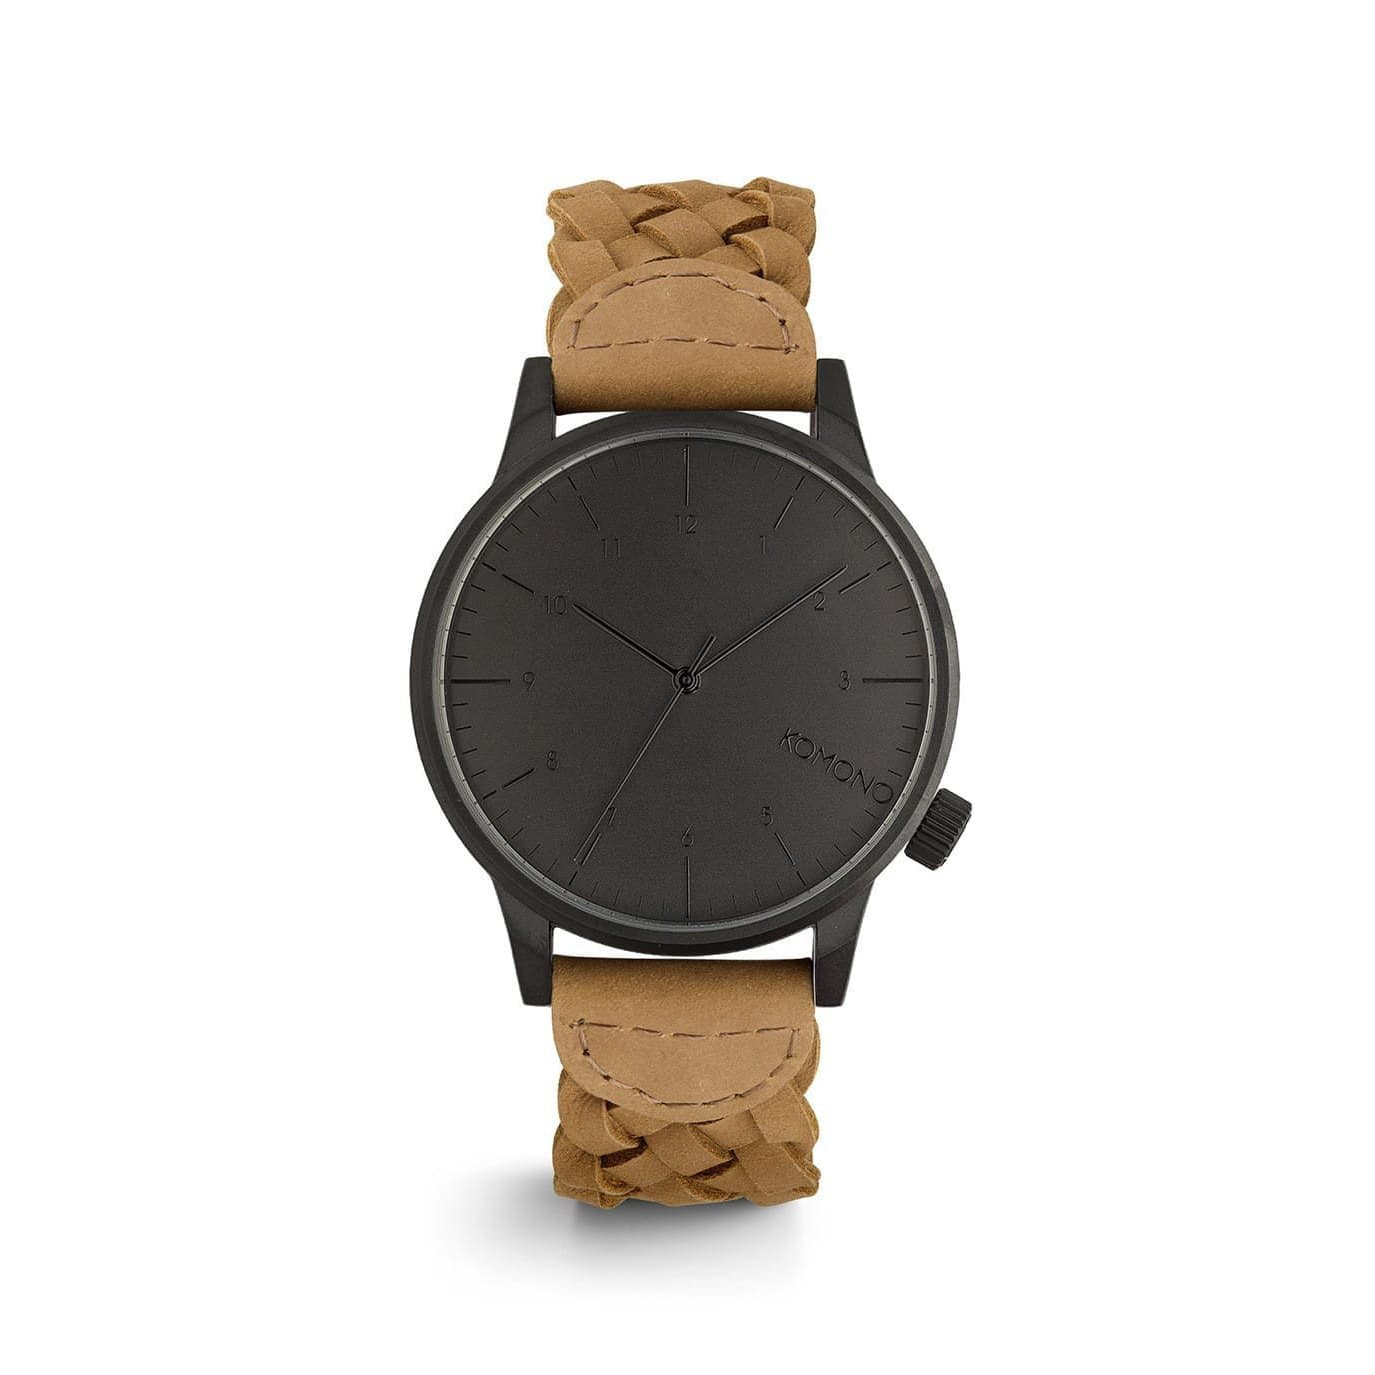 Komodo Men's Watch